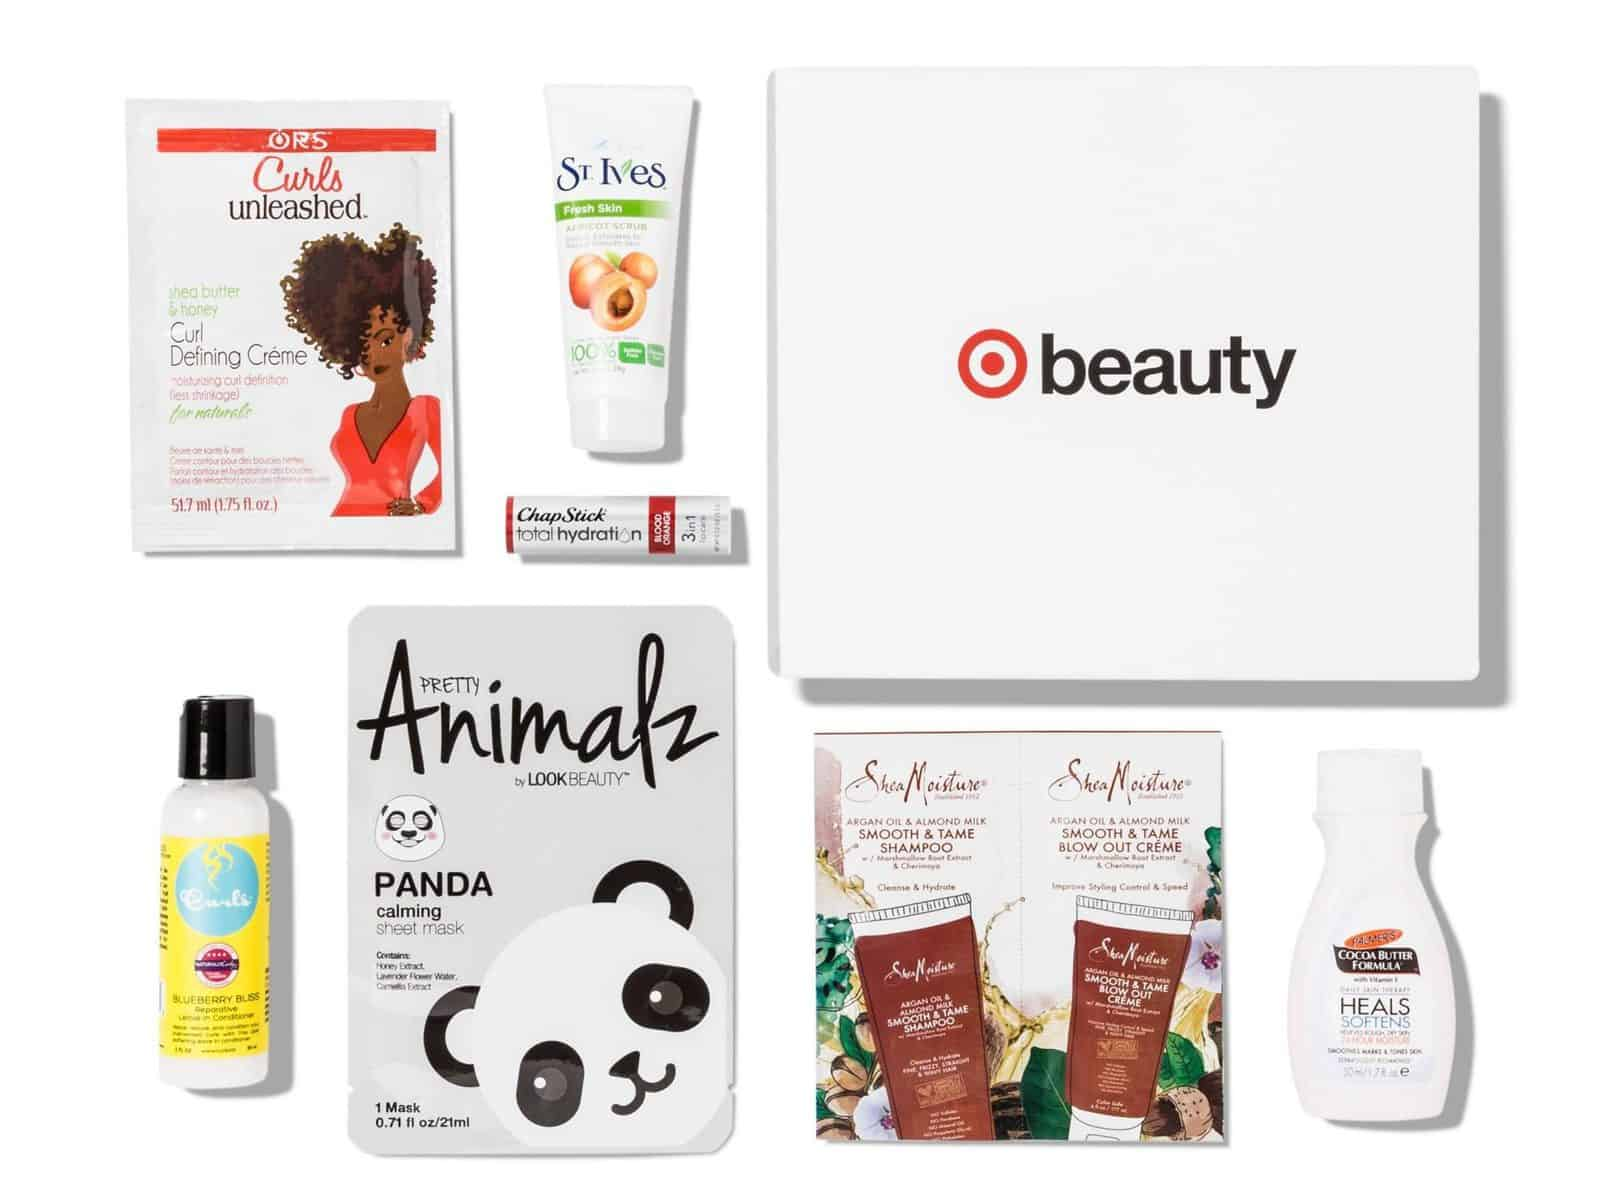 September 2017 Target Beauty Box Total Hydration Spoilers